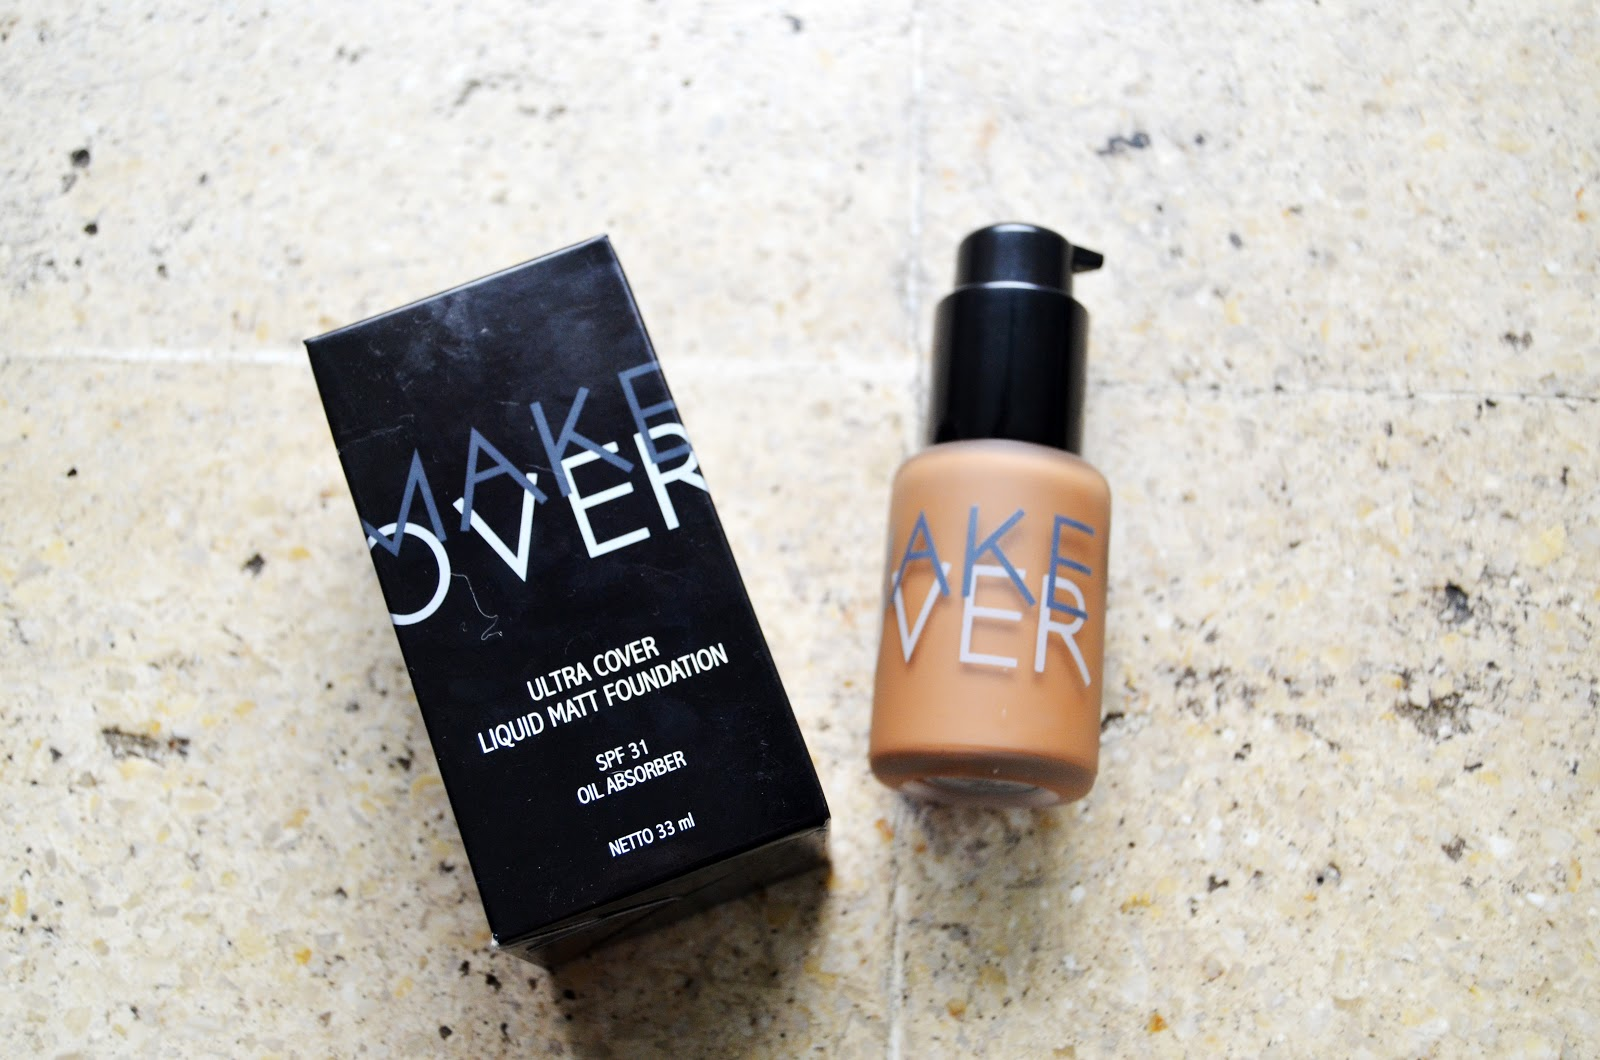 Make Over Ultra Cover Liquid Matt Foundation 07 Caramel Spec Dan 33 Ml Mat Shade